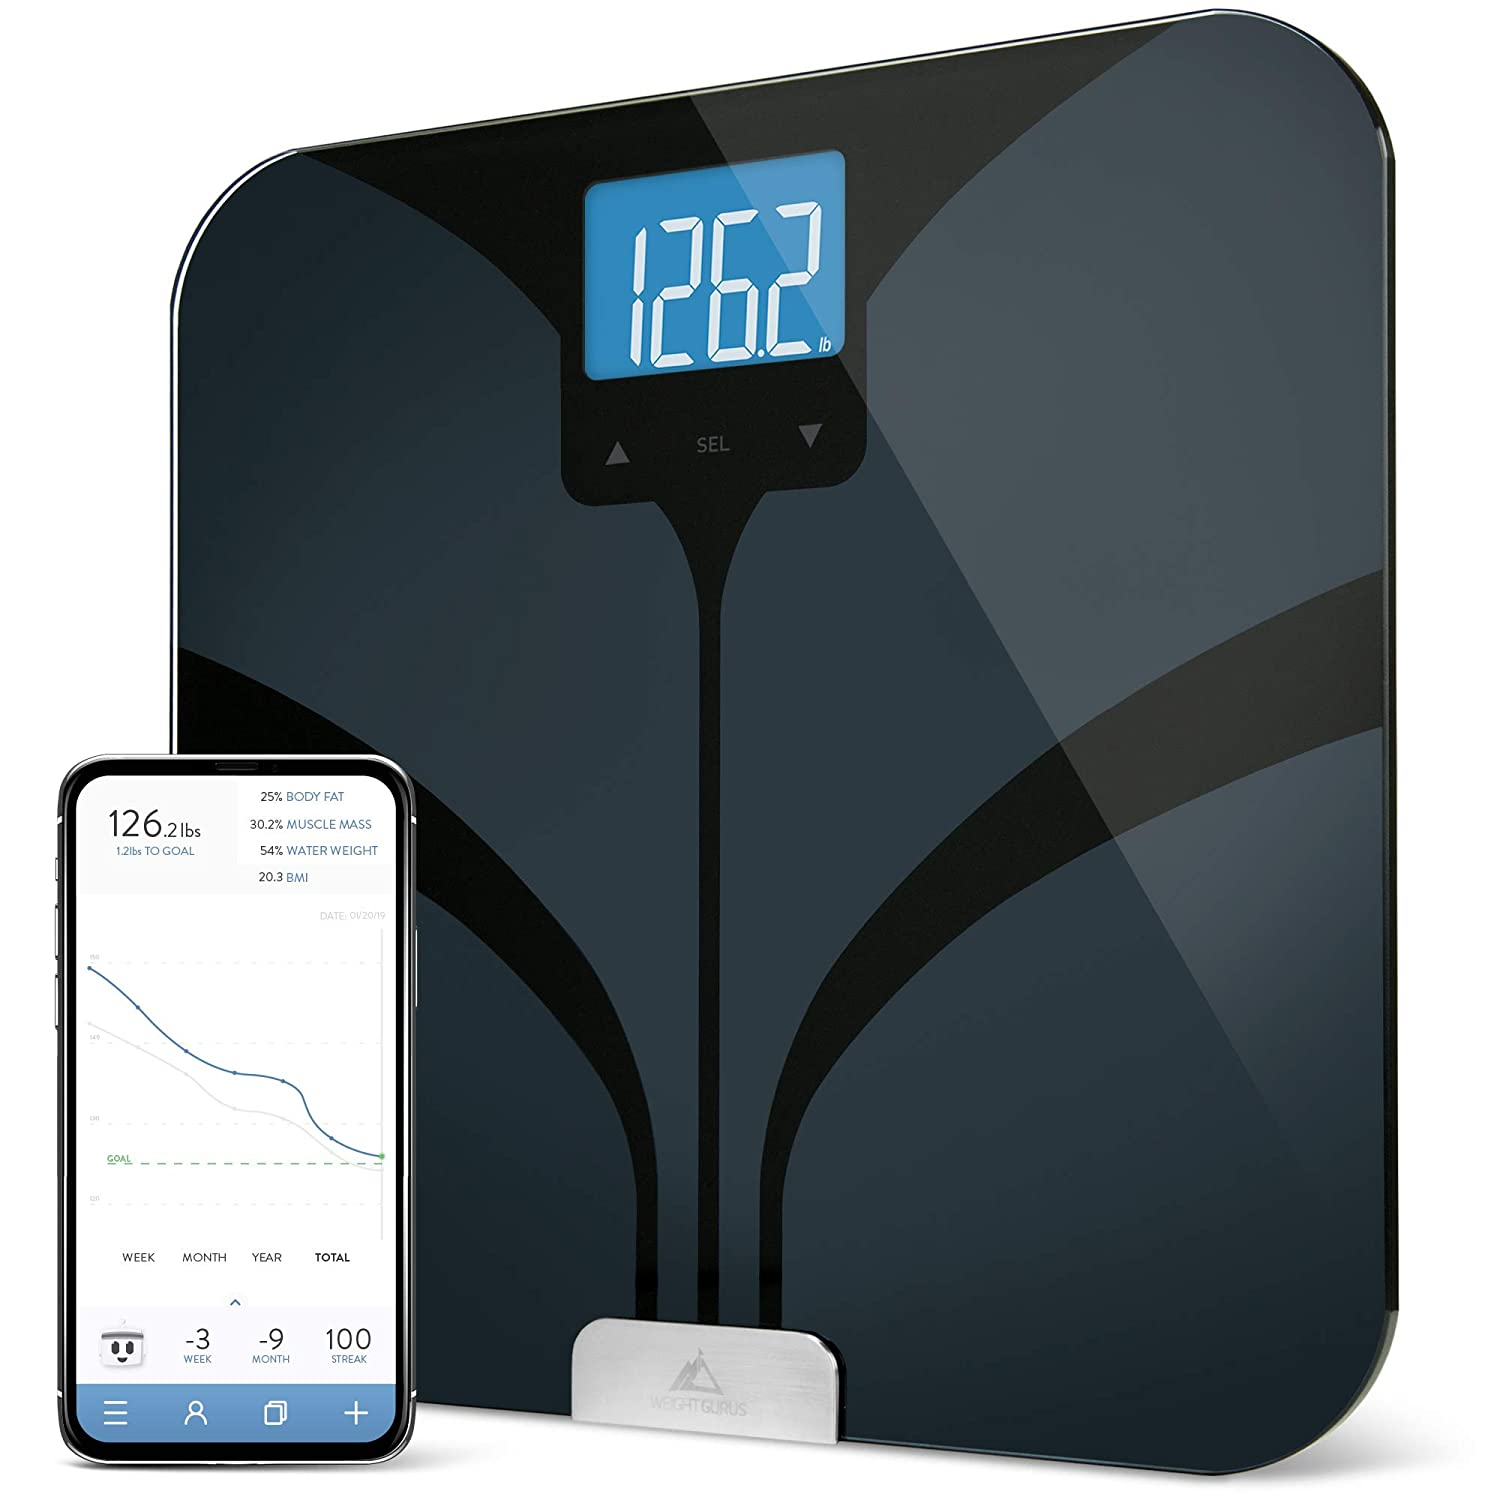 Weight Gurus Bluetooth Smart Connected Body Fat Scale with Large Backlit LCD, by Greater Goods (Black)